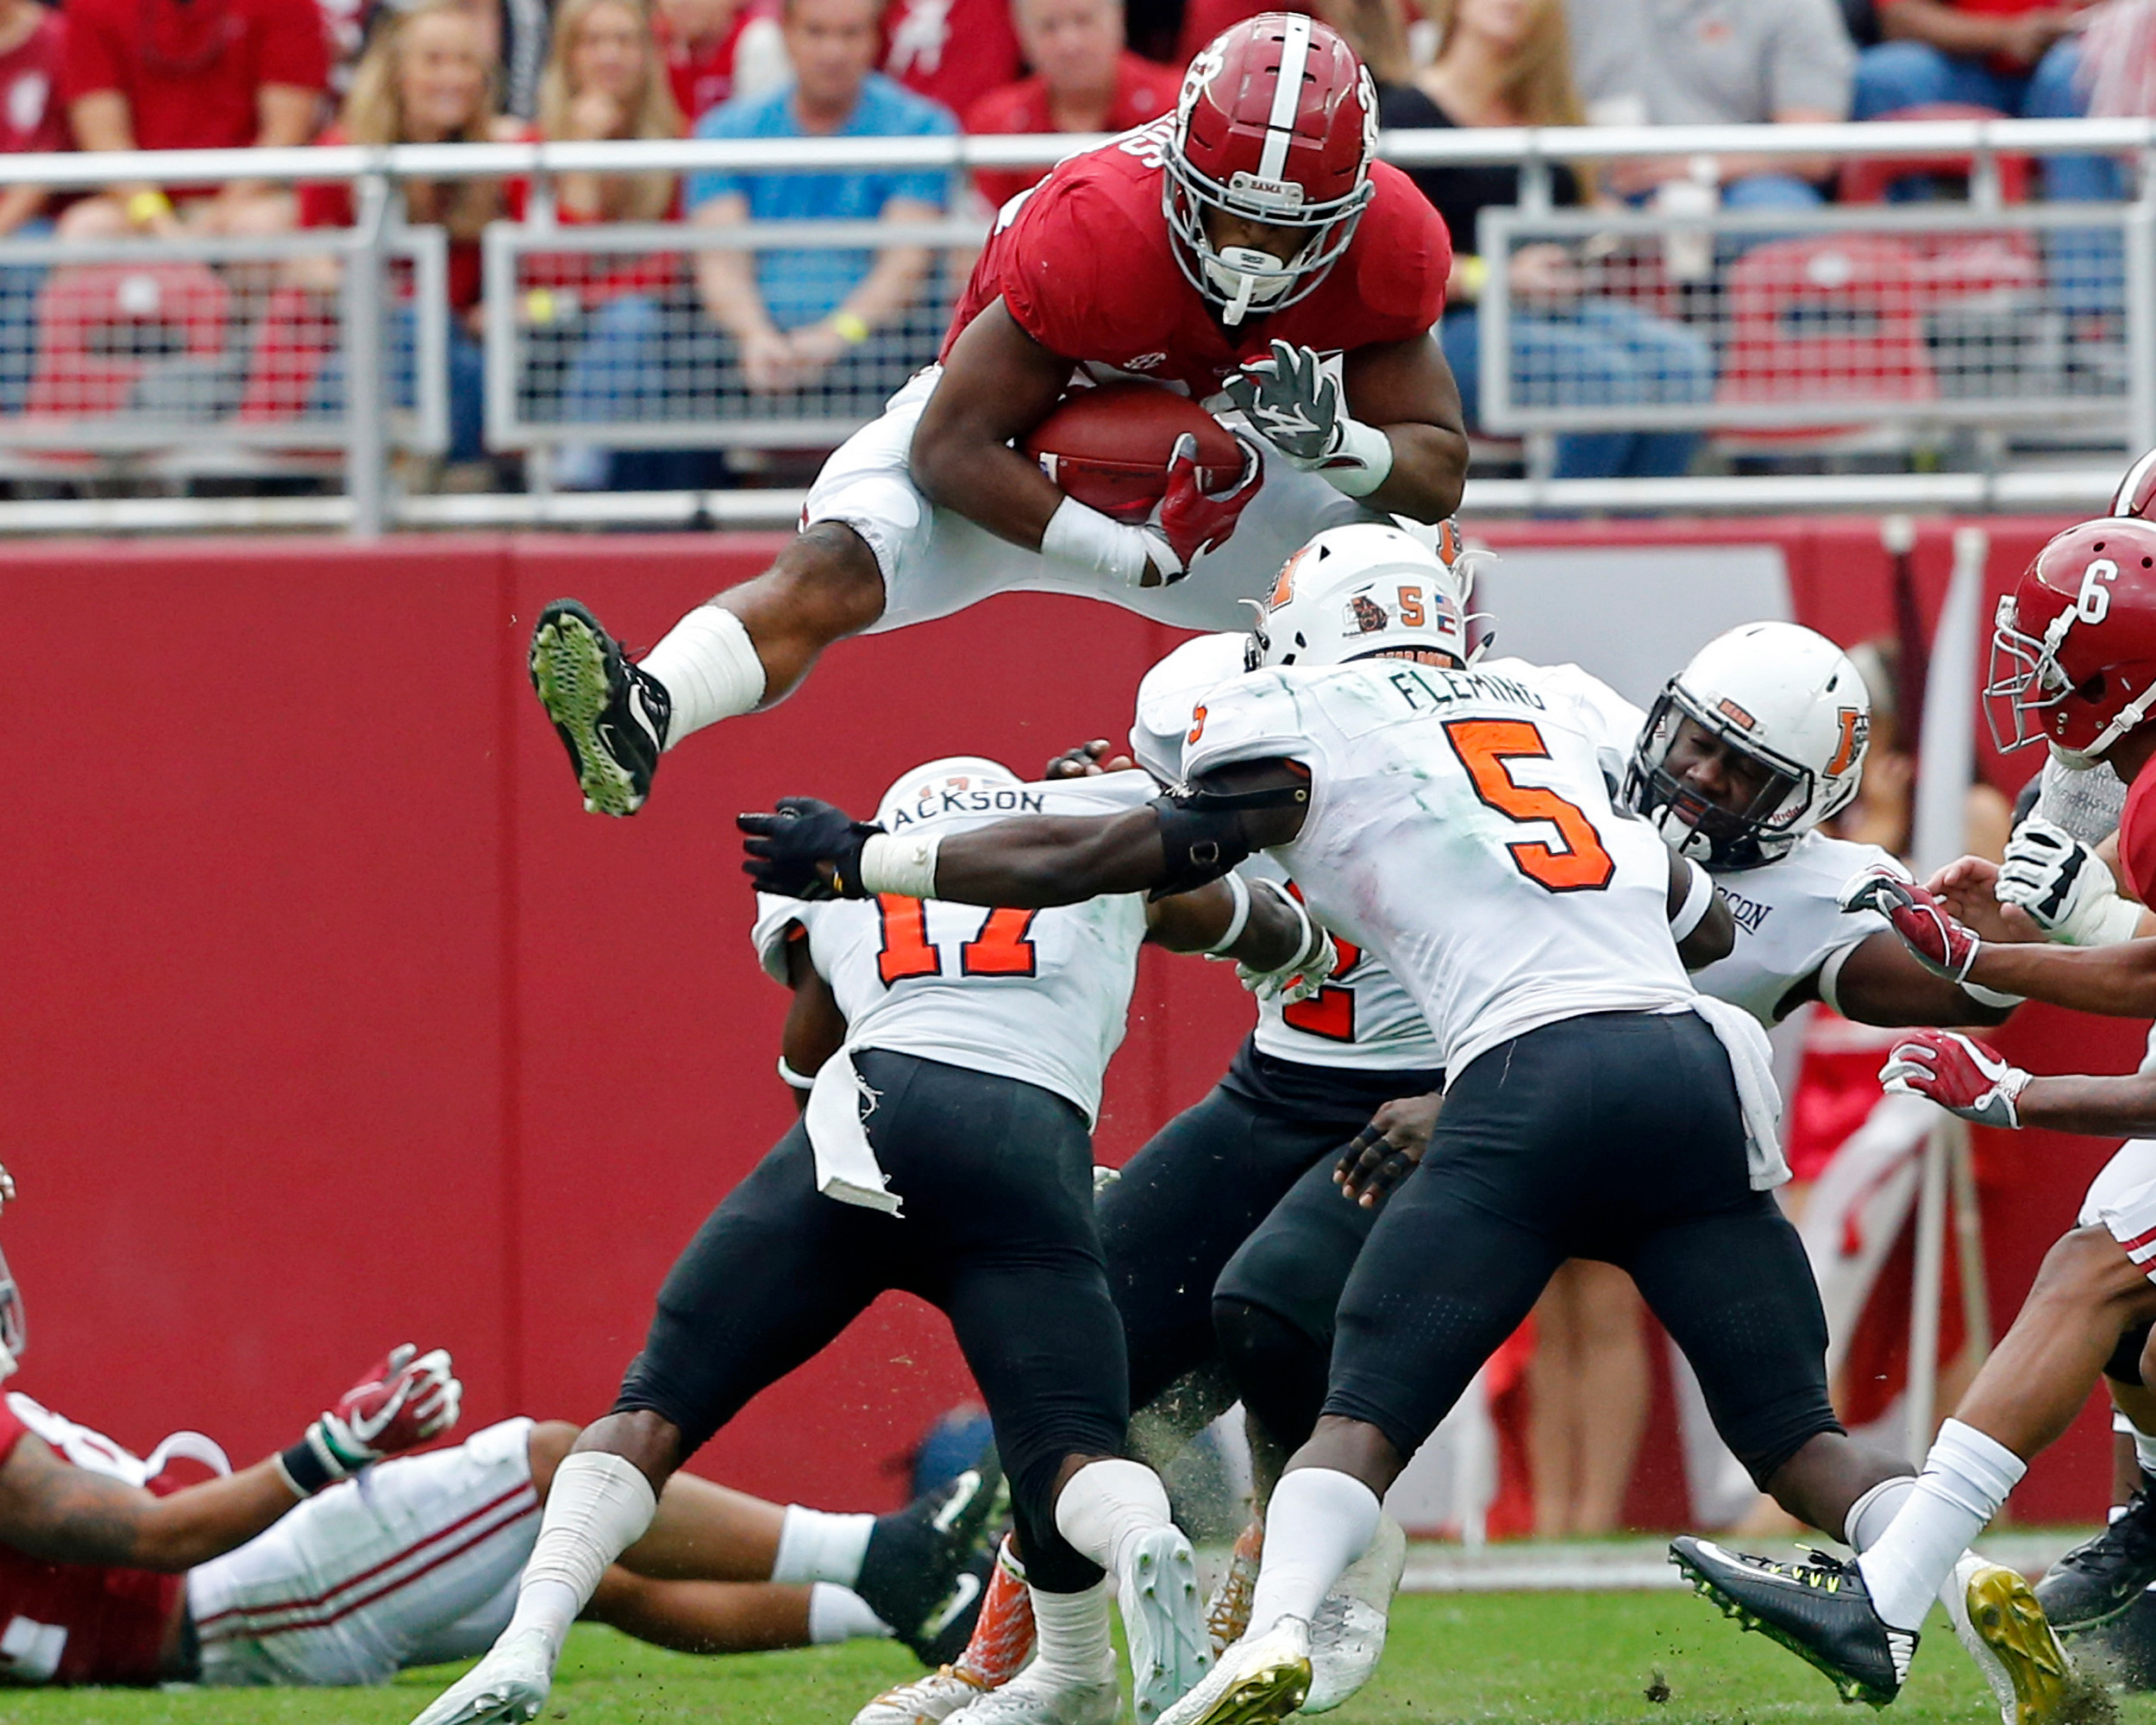 Alabama Crimson Tide running back Najee Harris (22) leaps for a 1st down during the 1st half of the game between the Mercer Bears and the University of Alabama Crimson Tide at Bryant-Denny Stadium in Tuscaloosa, Al on 11/18/2017.